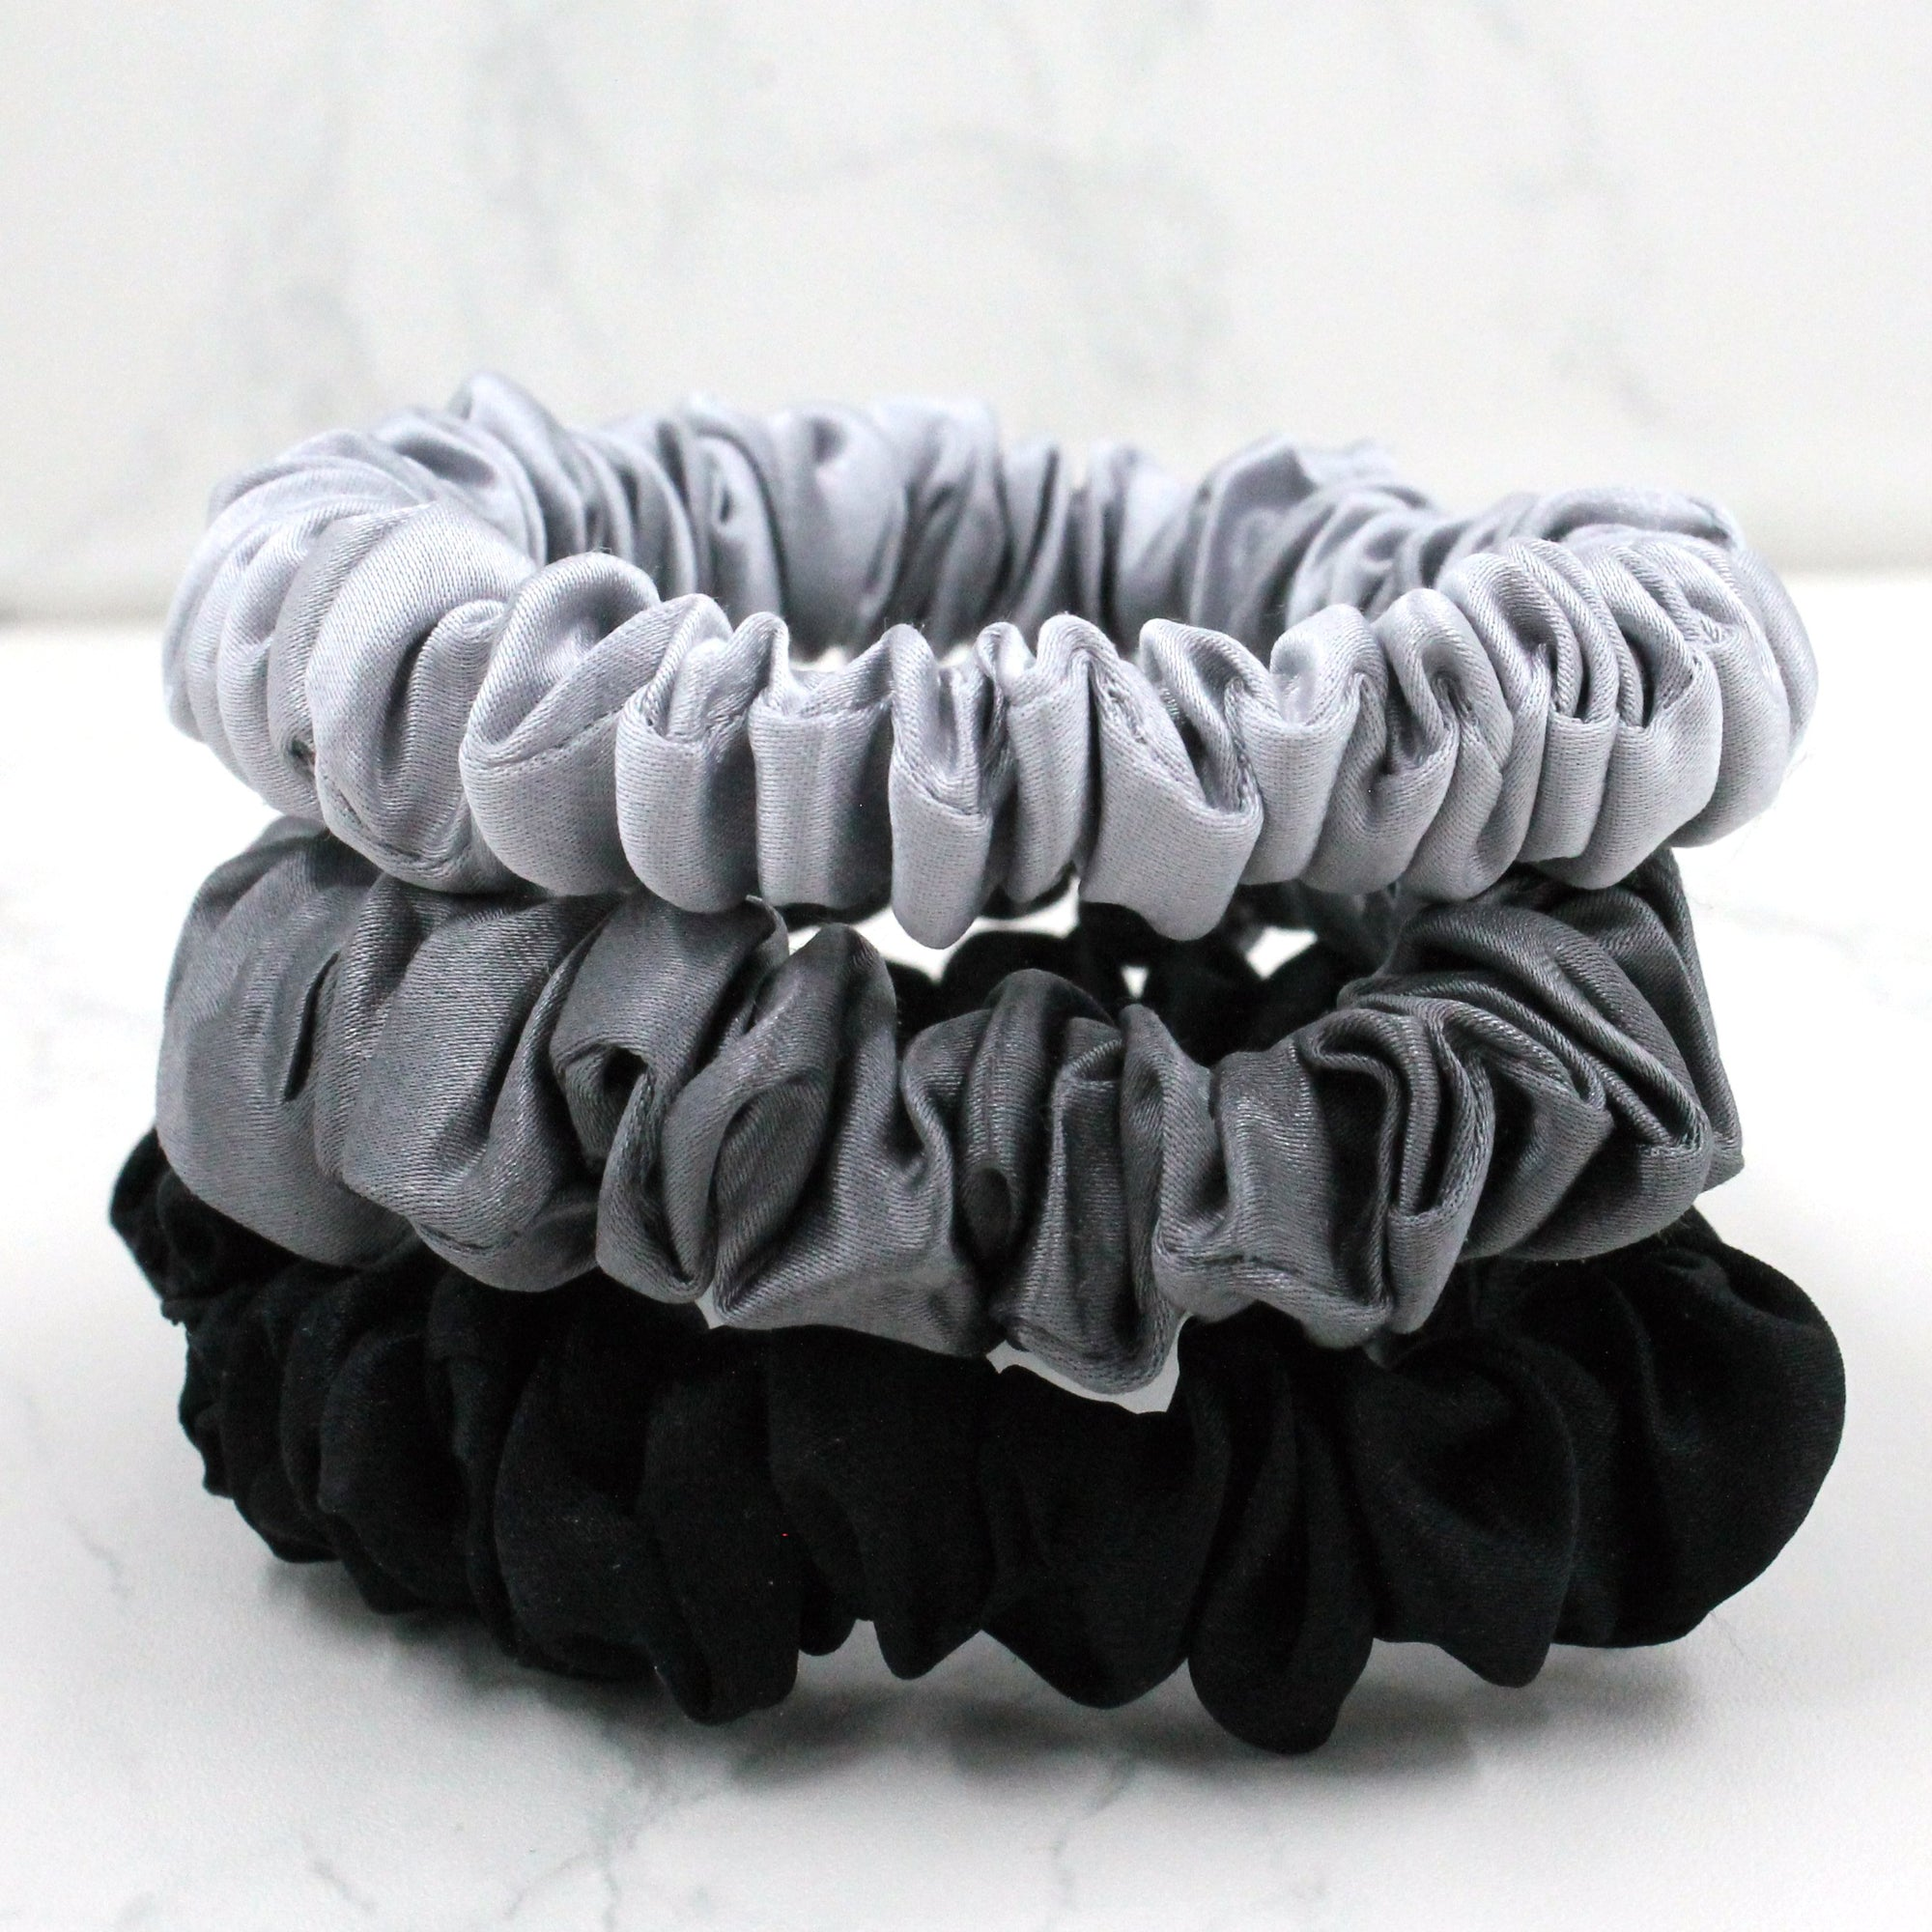 Silk Scrunchies - Midnight Black, Shimmery Silver, and Gunmetal Grey - Pure Mulberry Silk